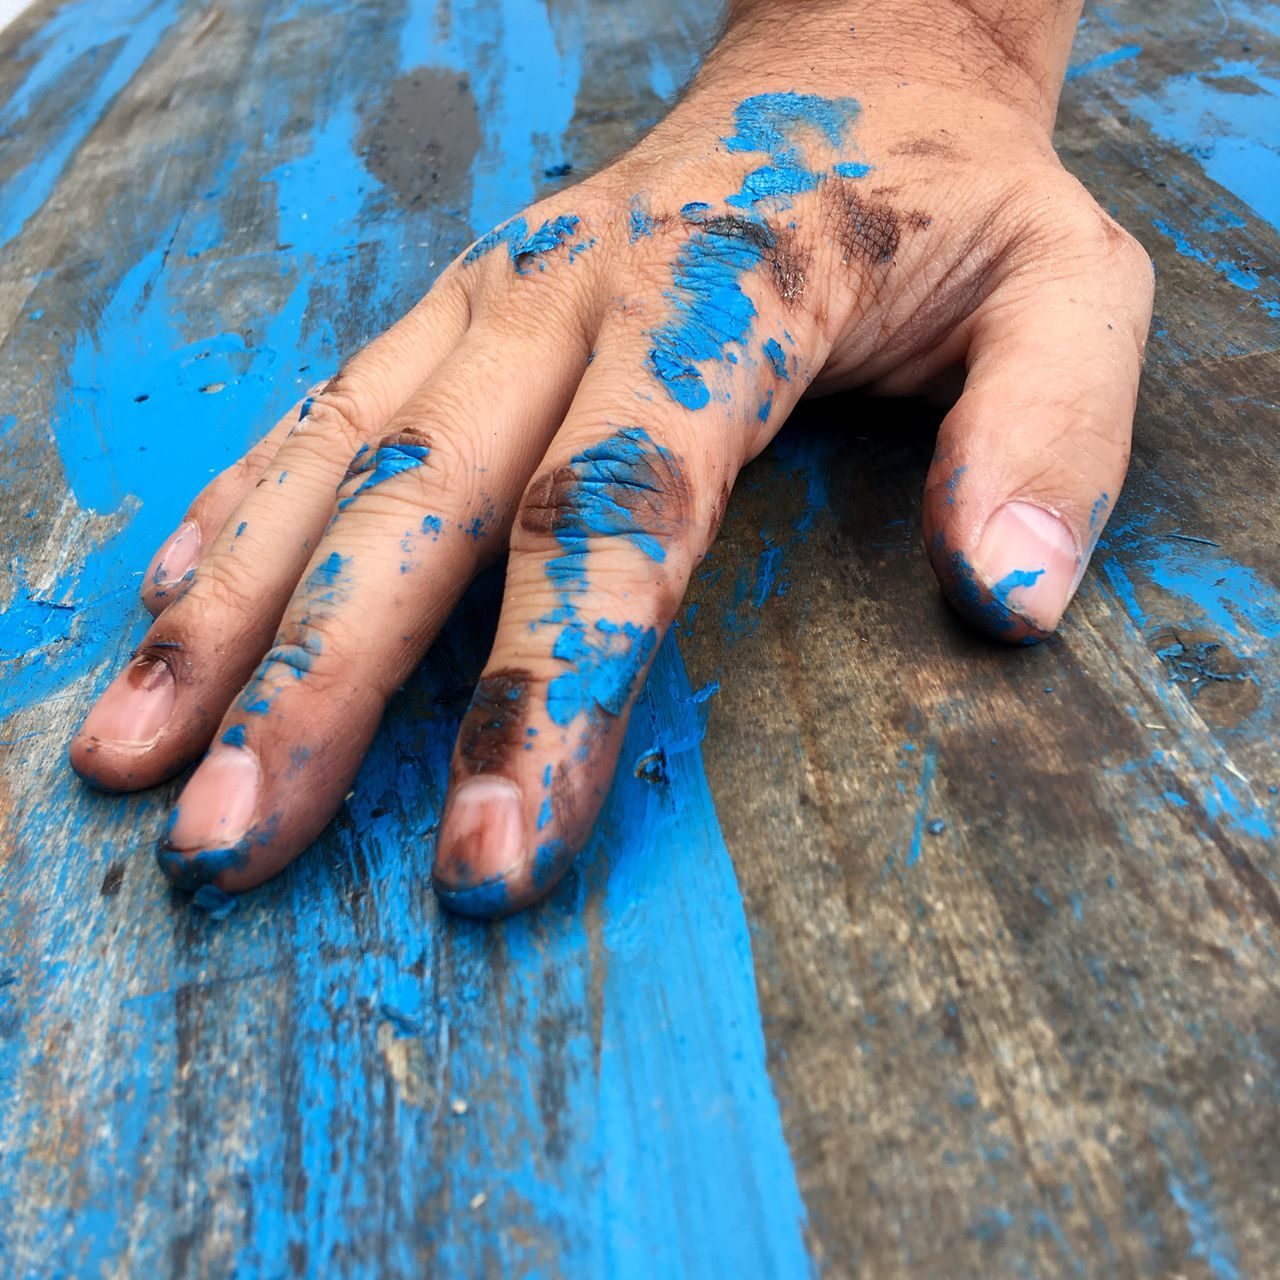 Wood - Material Human Body Part Human Hand Blue Holi Day One Person Outdoors People Close-up Powder Paint One Man Only Adults Only Adult Only Men Talcum Powder Brush Craft Colors Paint Textured